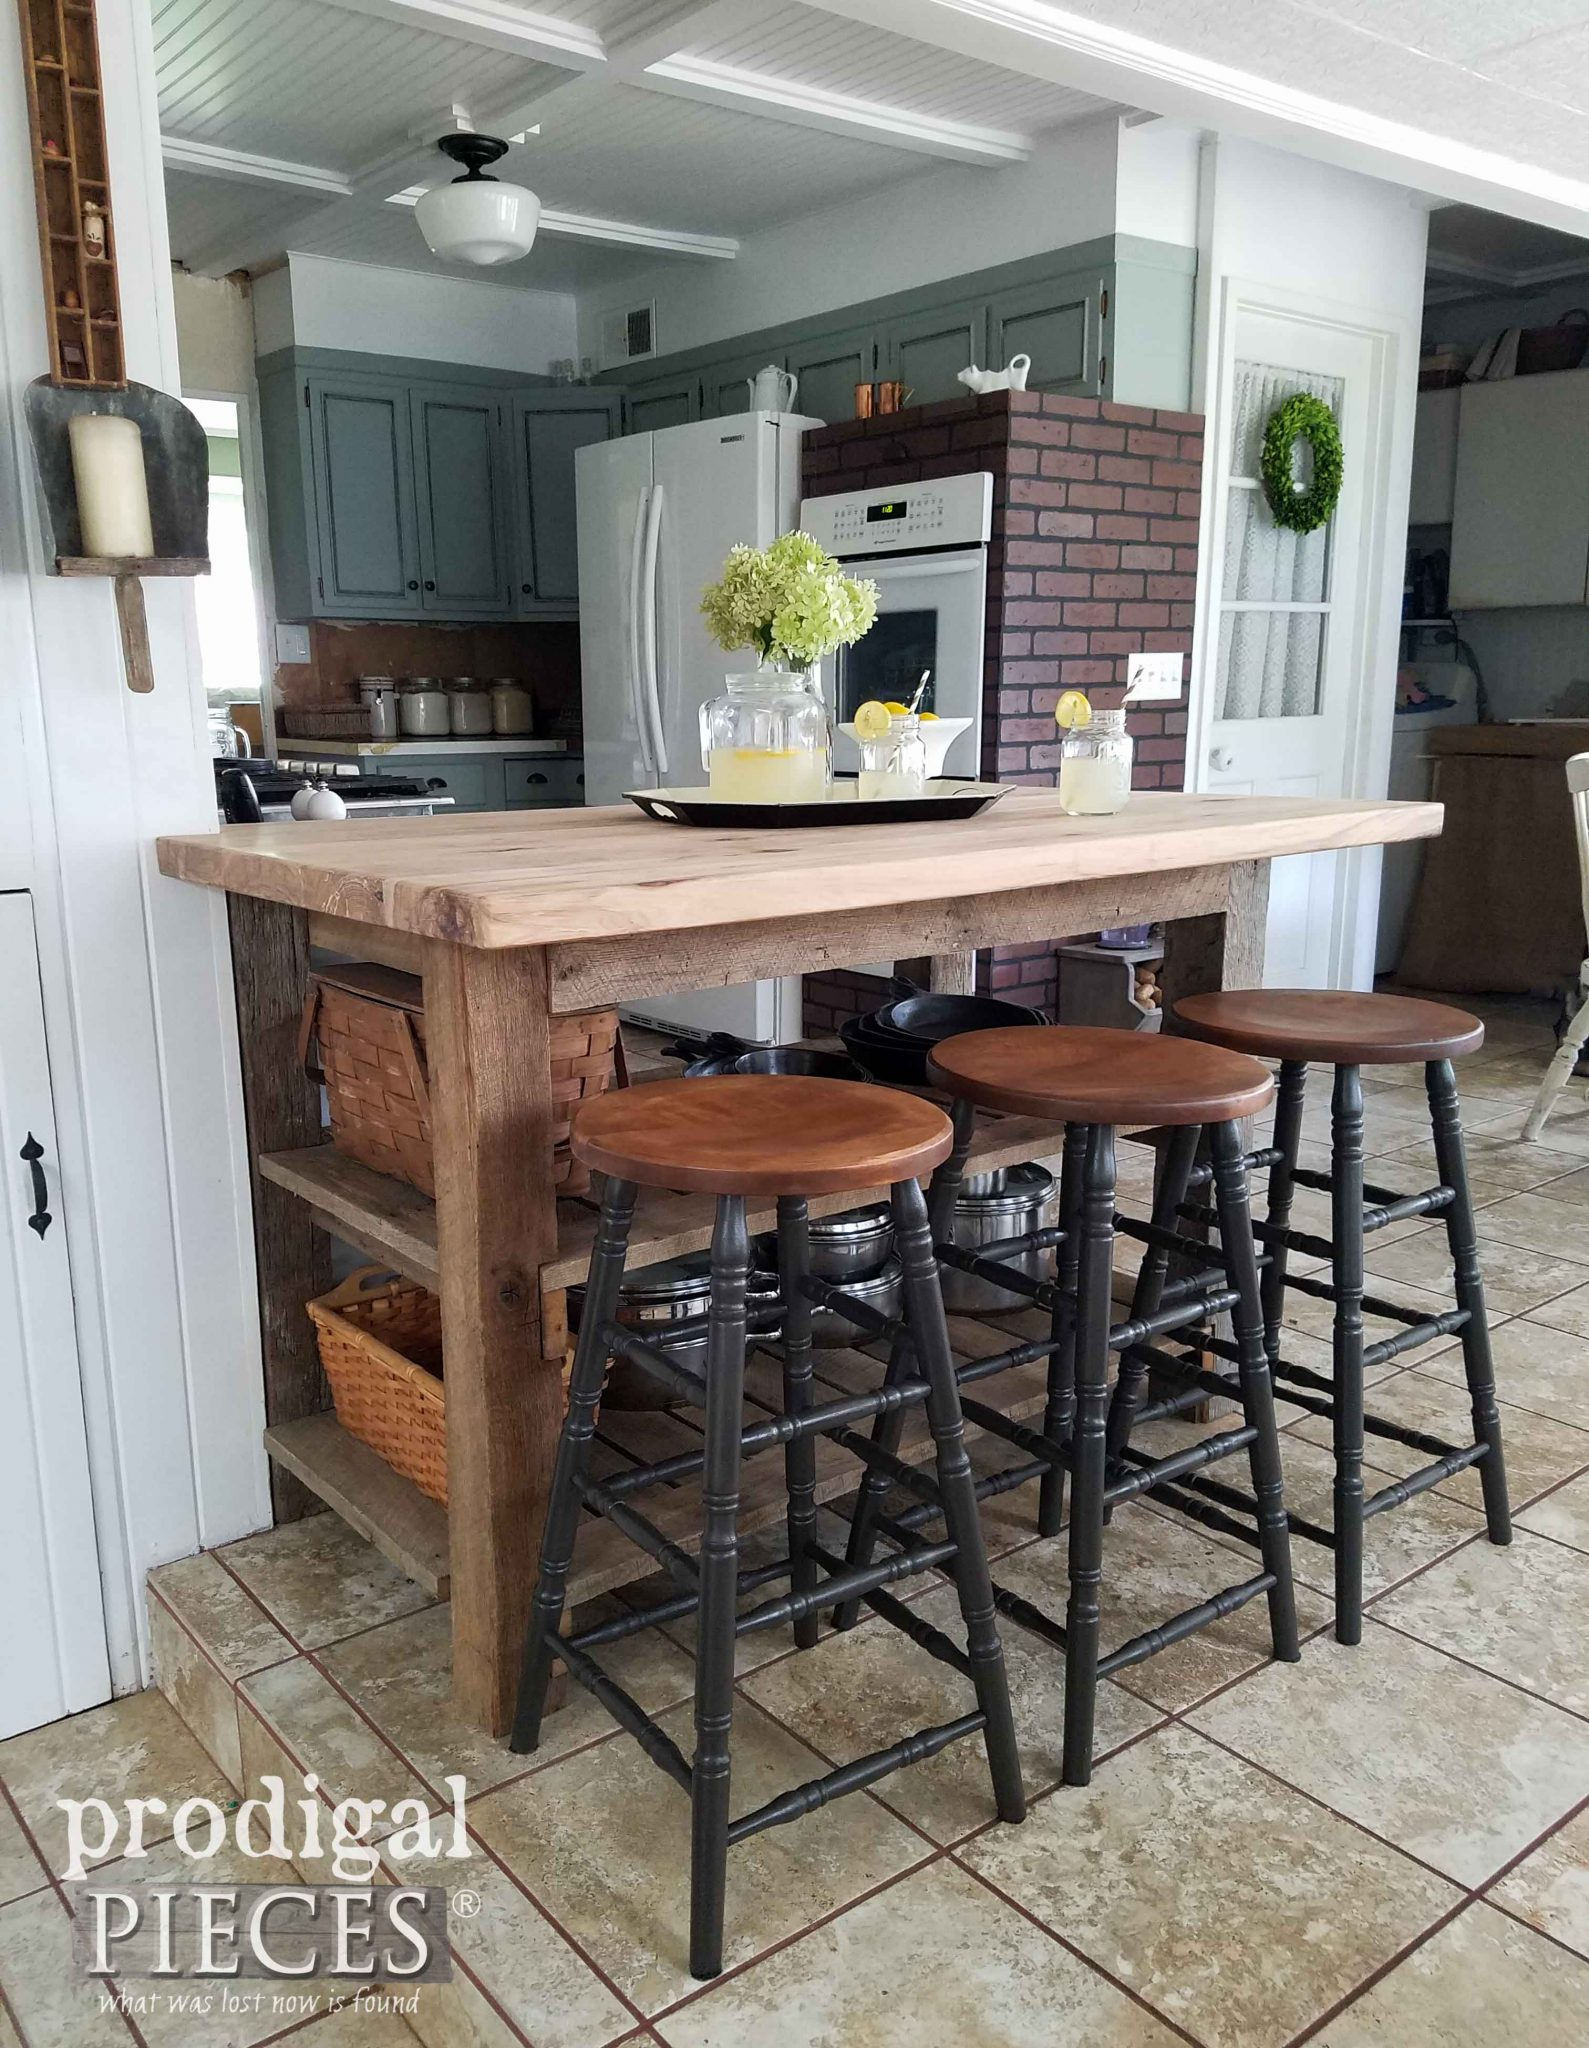 Farmhouse Style Kitchen Update with Bar Stools by Prodigal Pieces | prodigalpieces.com